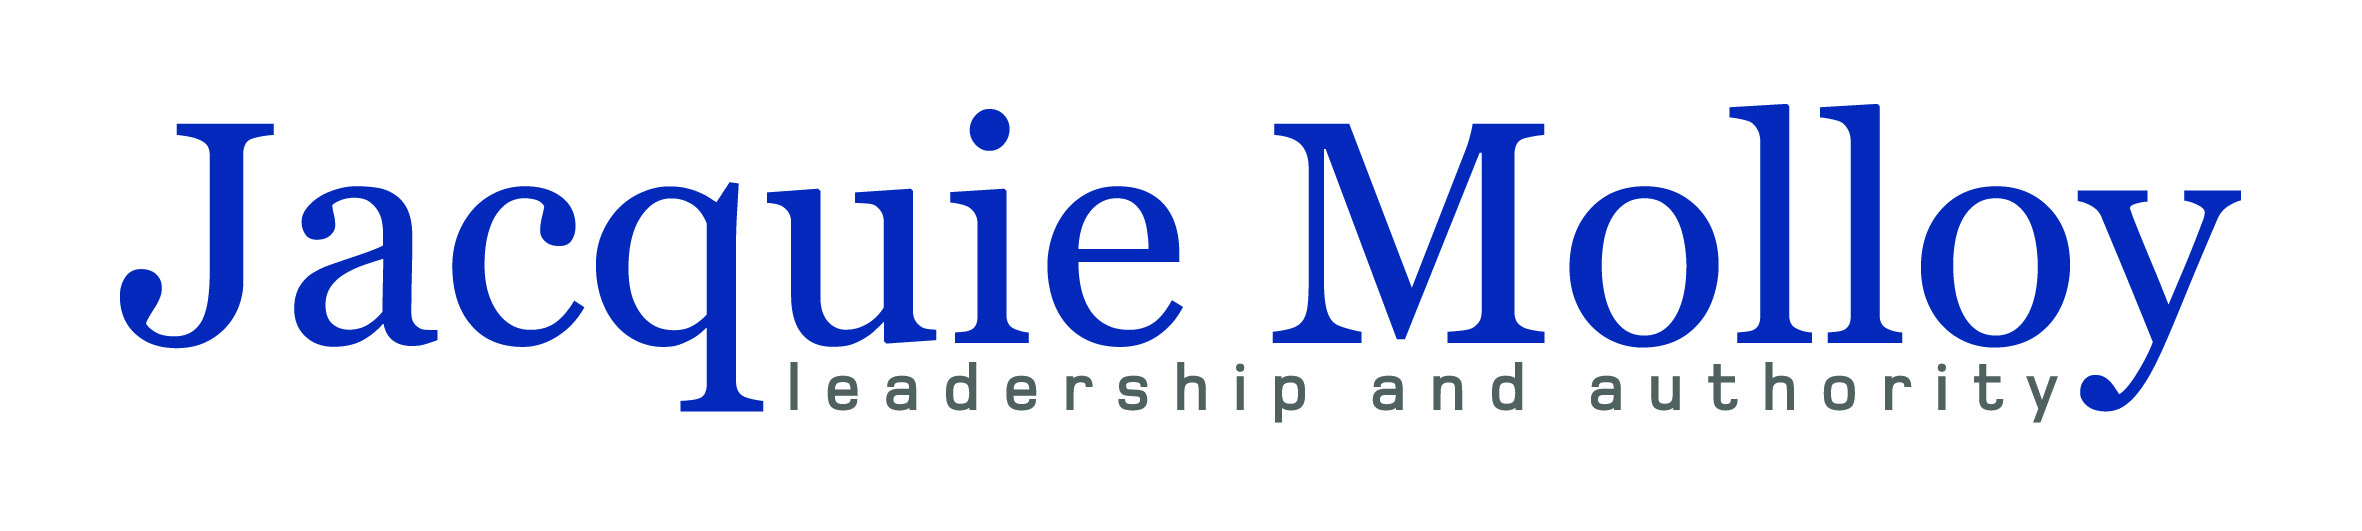 Jacquie Molloy - Leadership and Authority - designed by accurate expressions